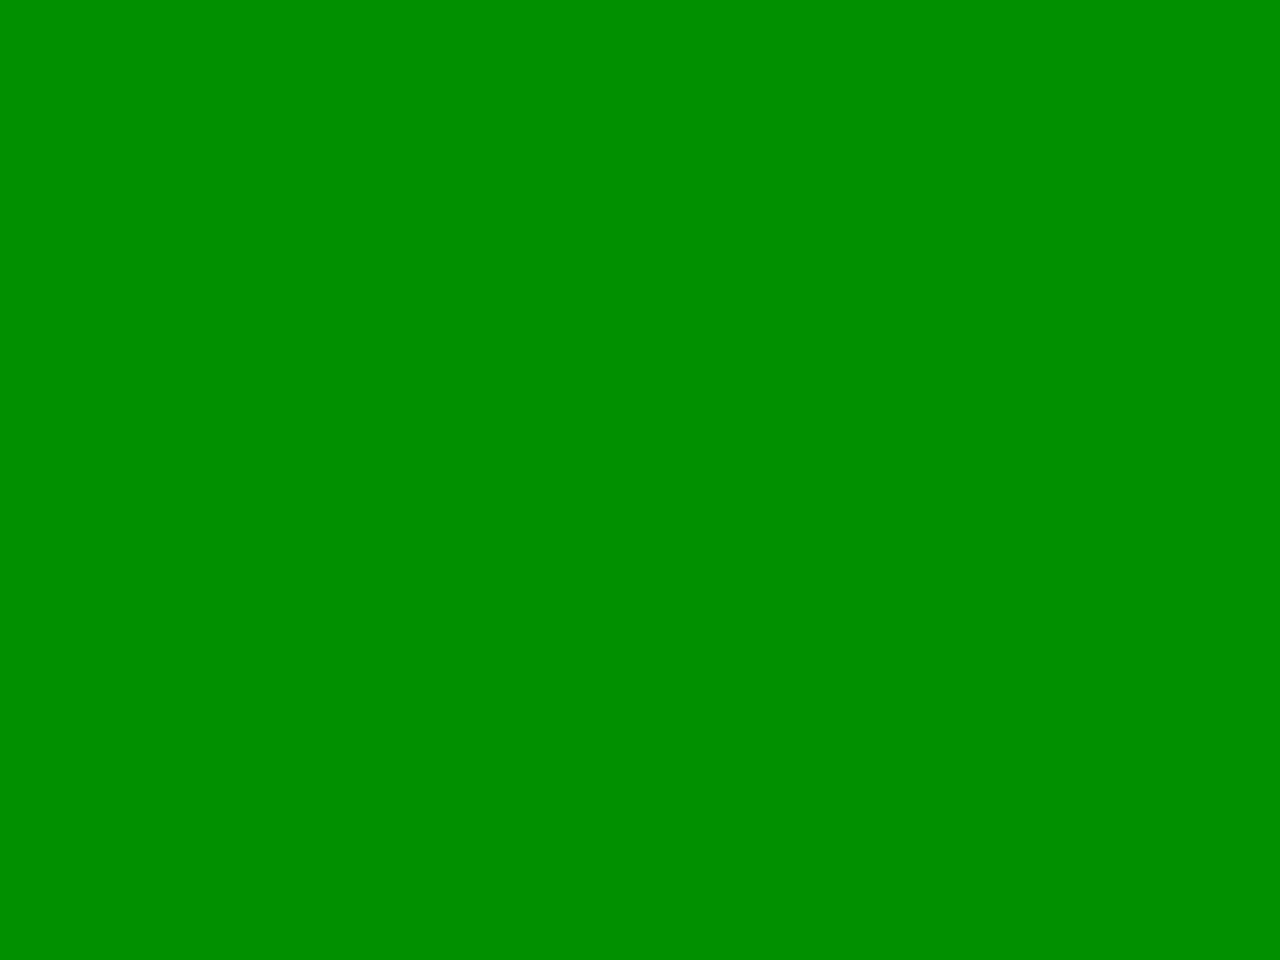 1280x960 Islamic Green Solid Color Background